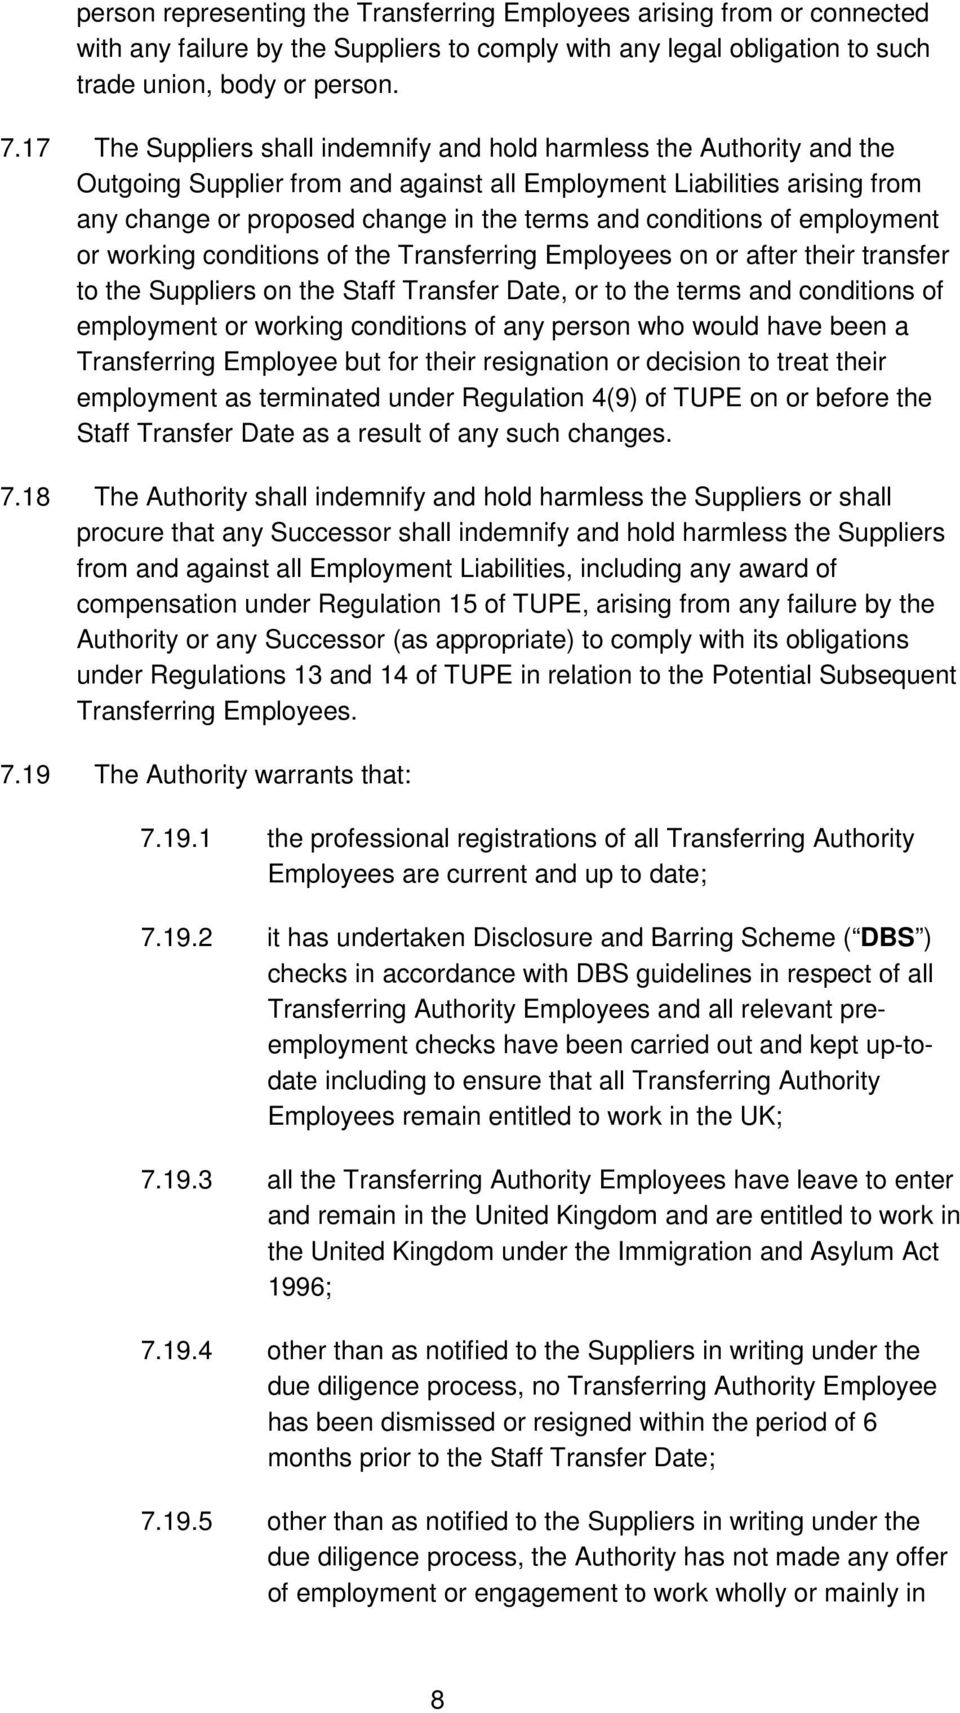 conditions of employment or working conditions of the Transferring Employees on or after their transfer to the Suppliers on the Staff Transfer Date, or to the terms and conditions of employment or